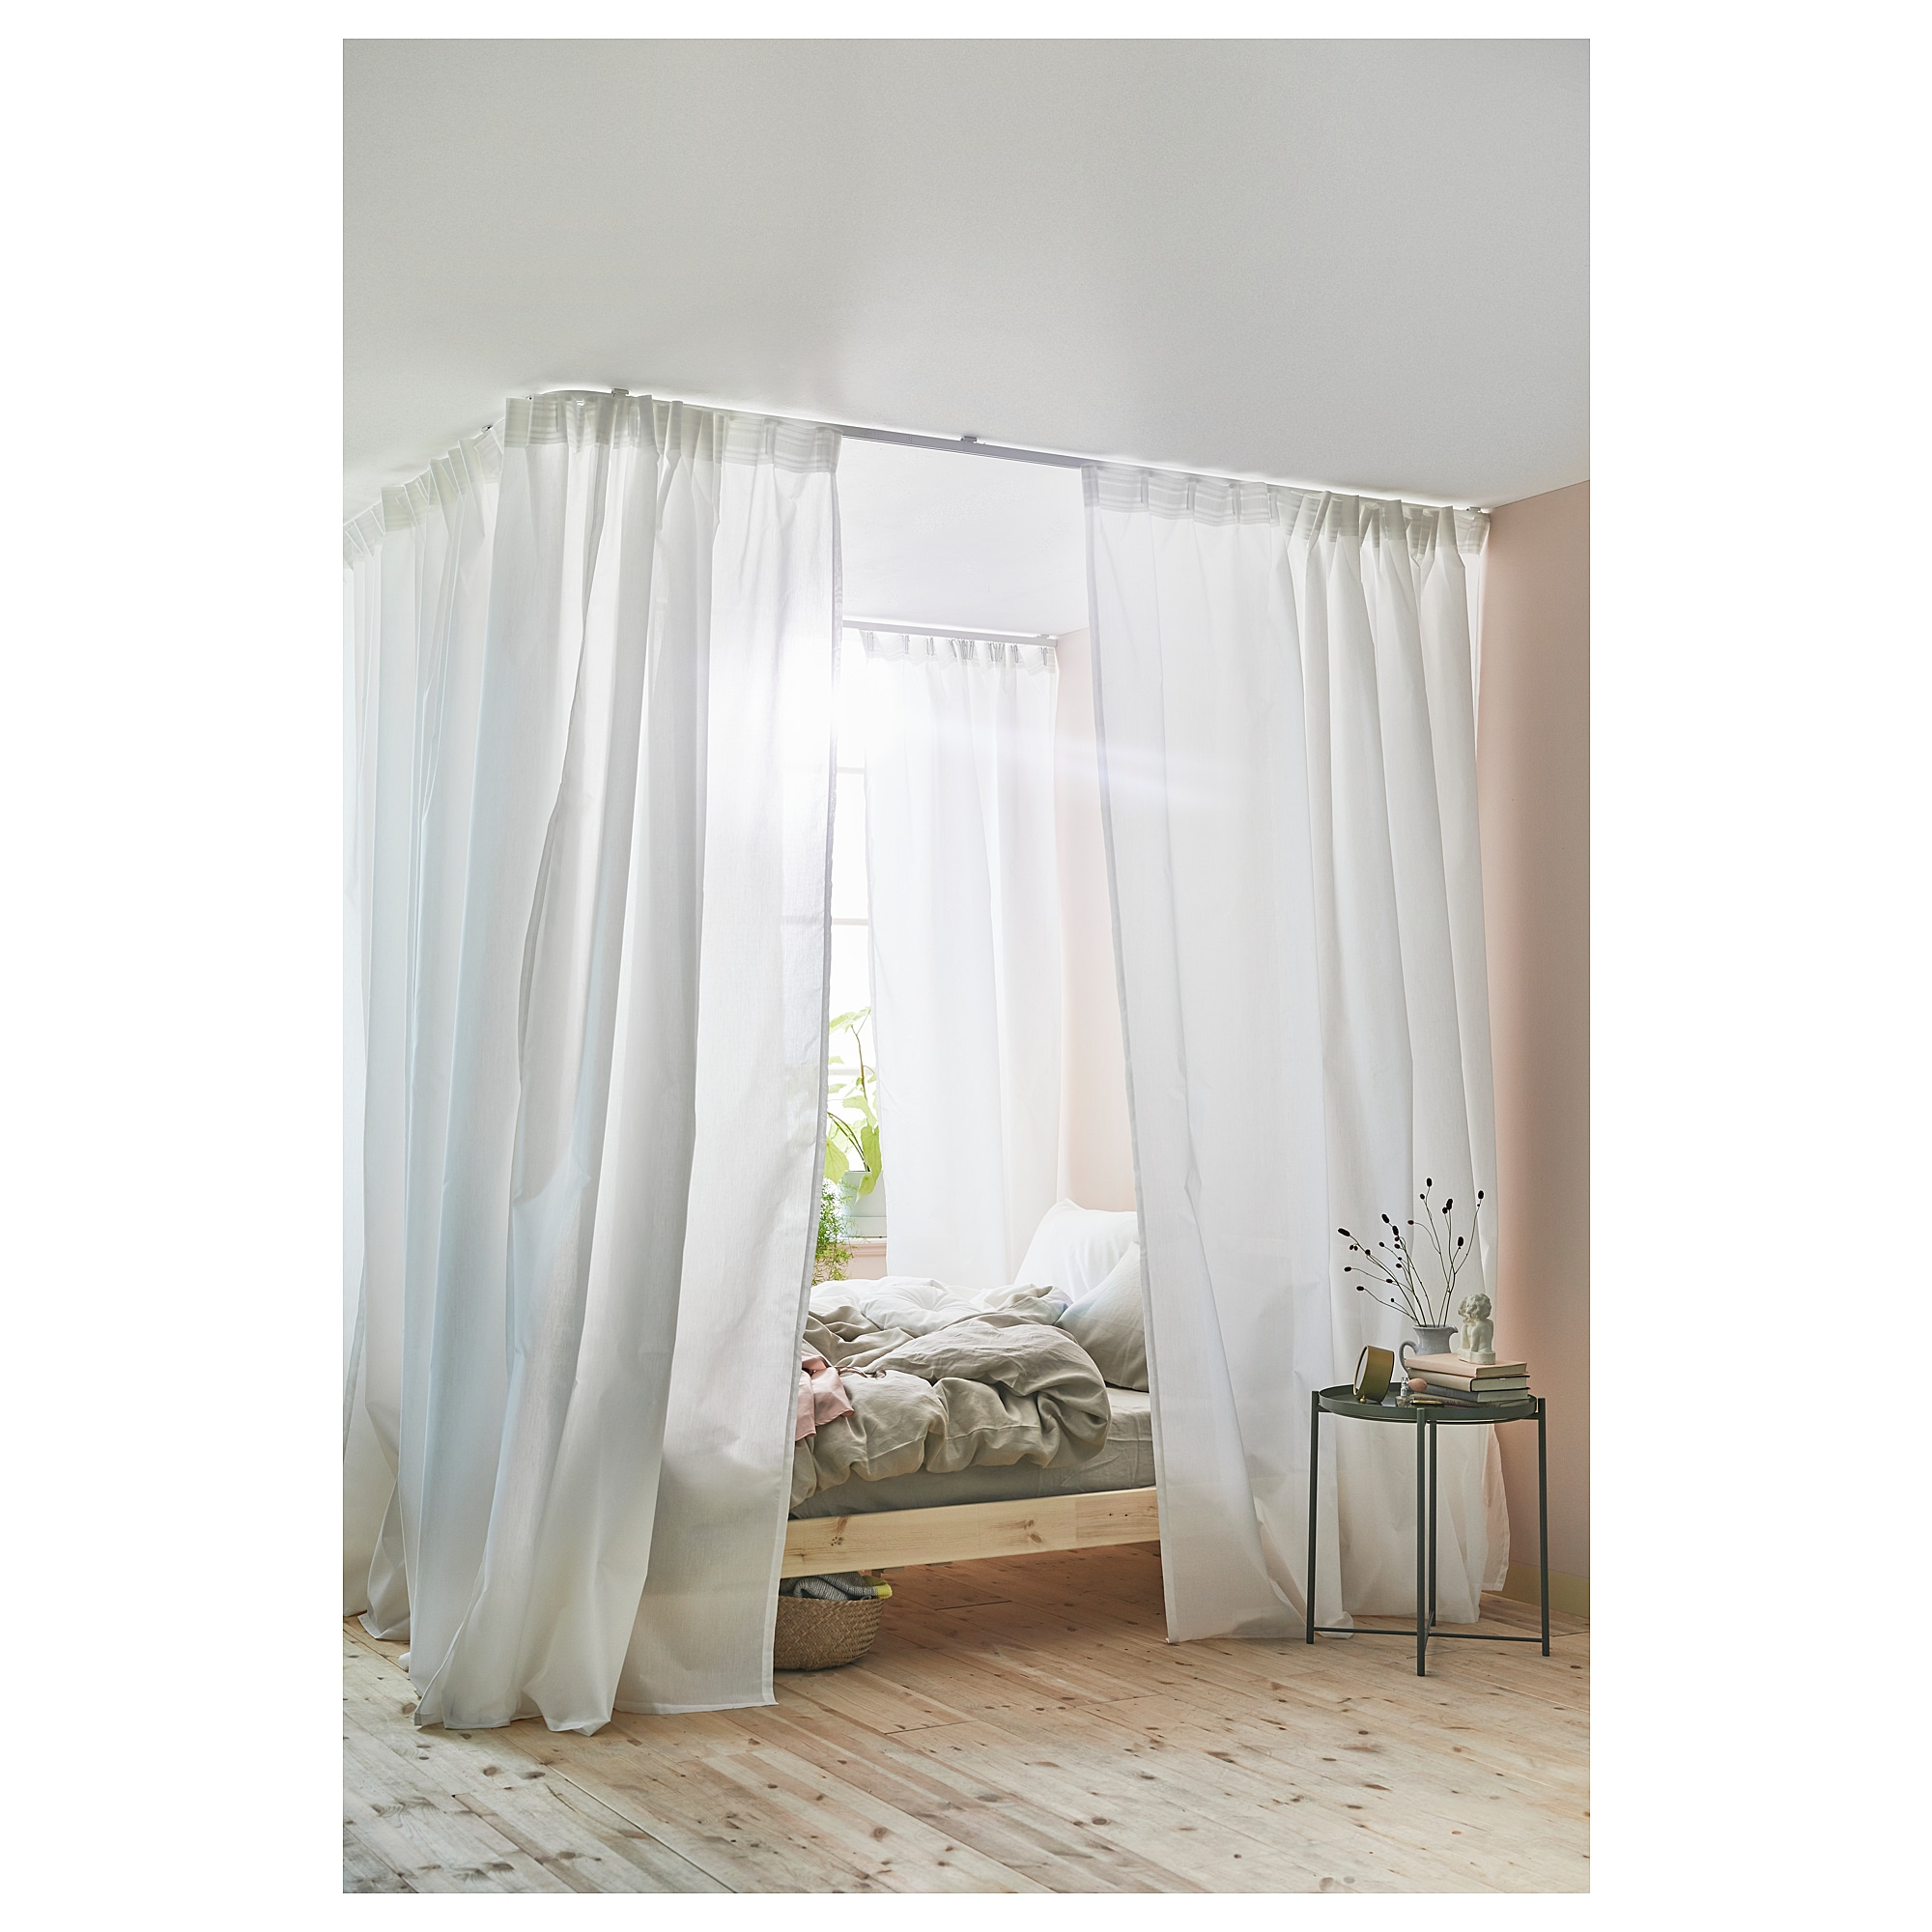 excelsior ideas ikea style dividers best wall panels sha fice of furniture room divider